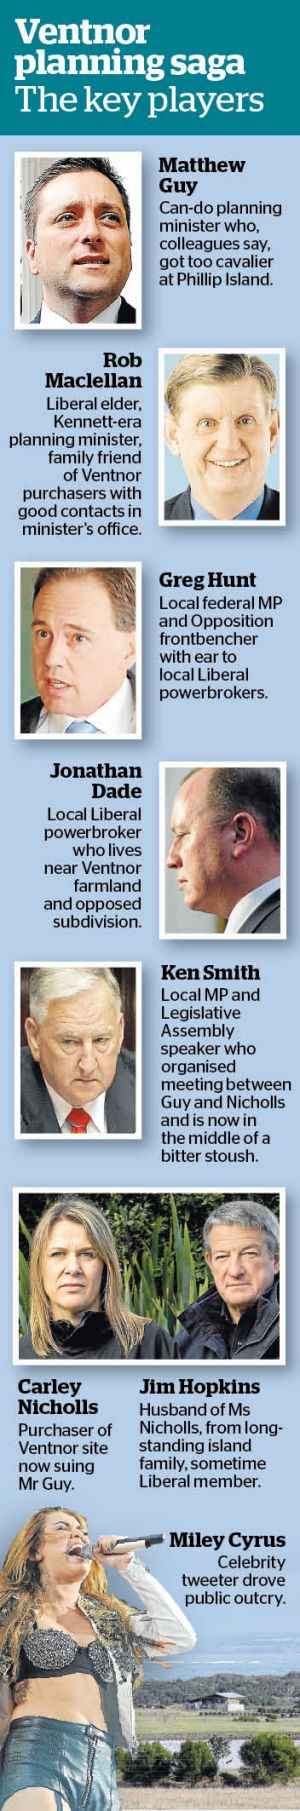 The key players in the Ventnor planning saga.